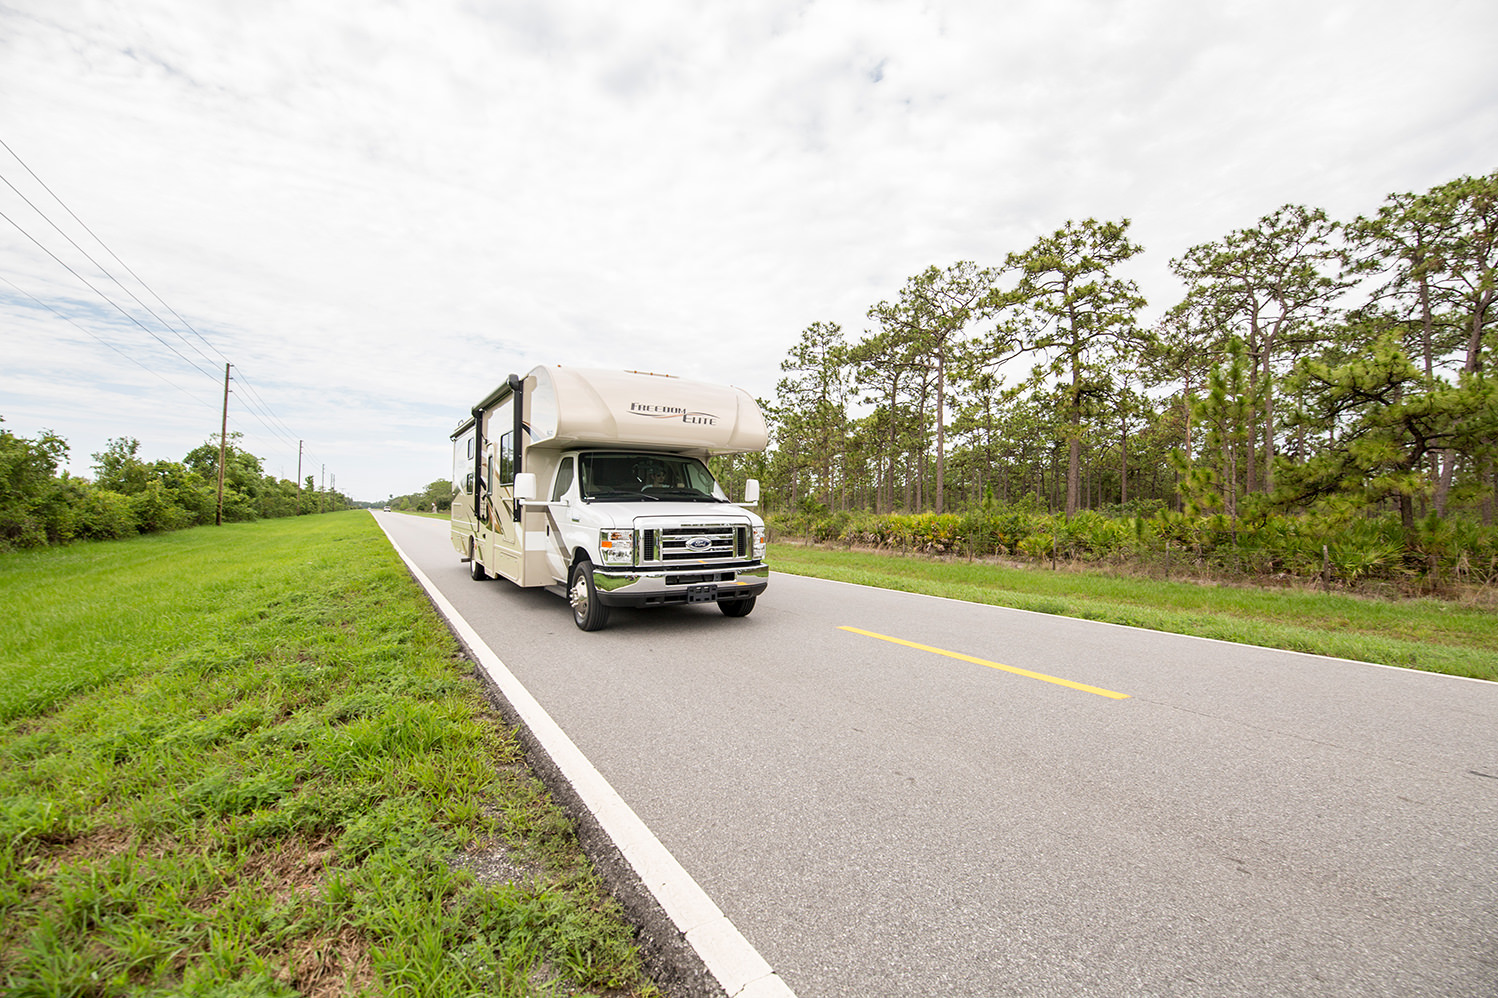 Getting your RV home afer a medical emergency